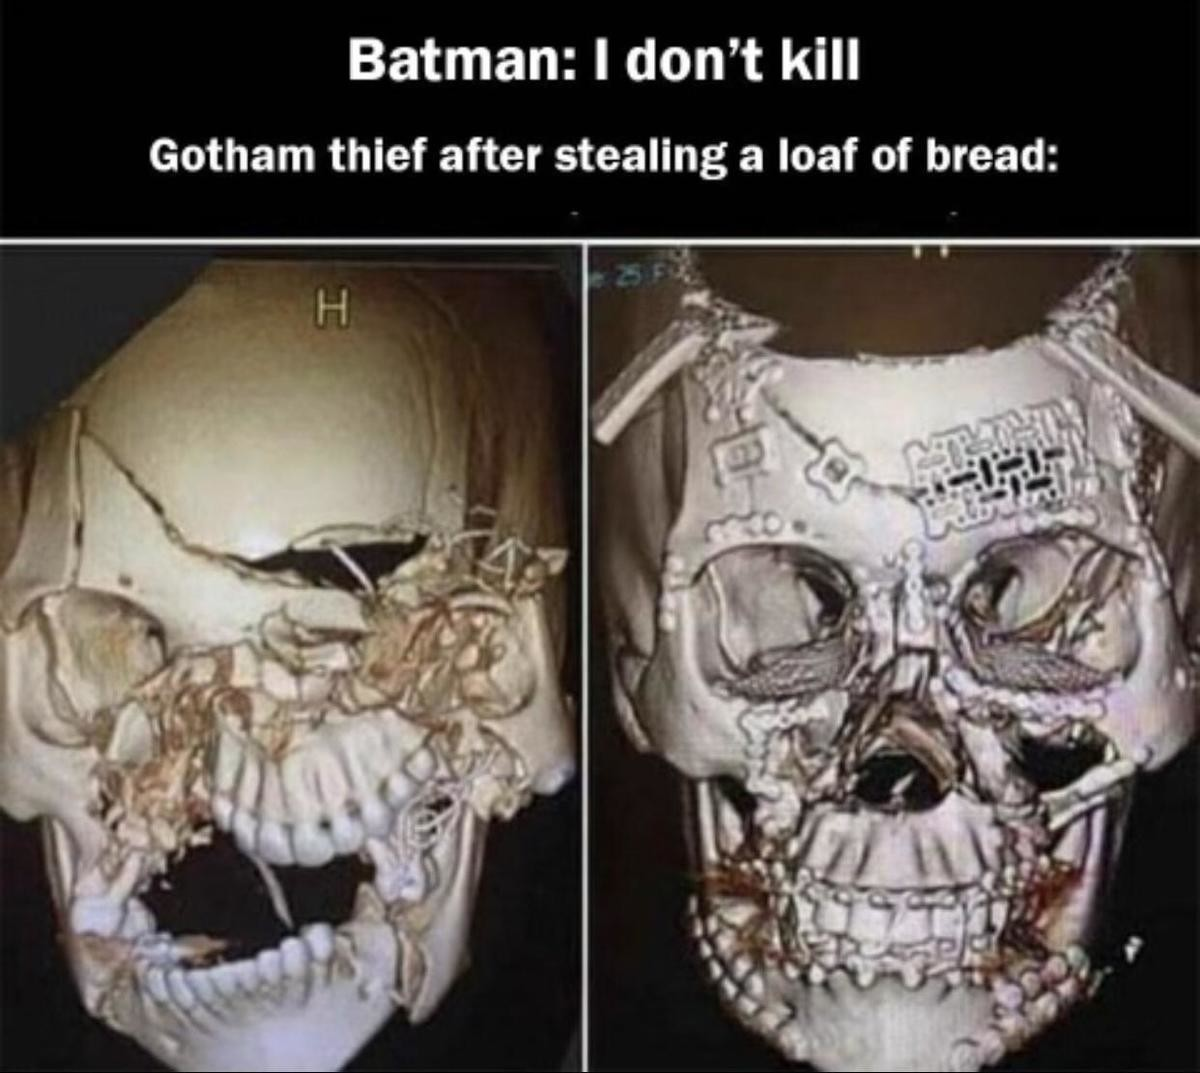 high-res s. .. Shouldna stole that loaf of bread in Gotham then. Metropolis is a river away and Superman would break your loaf-cutter in.